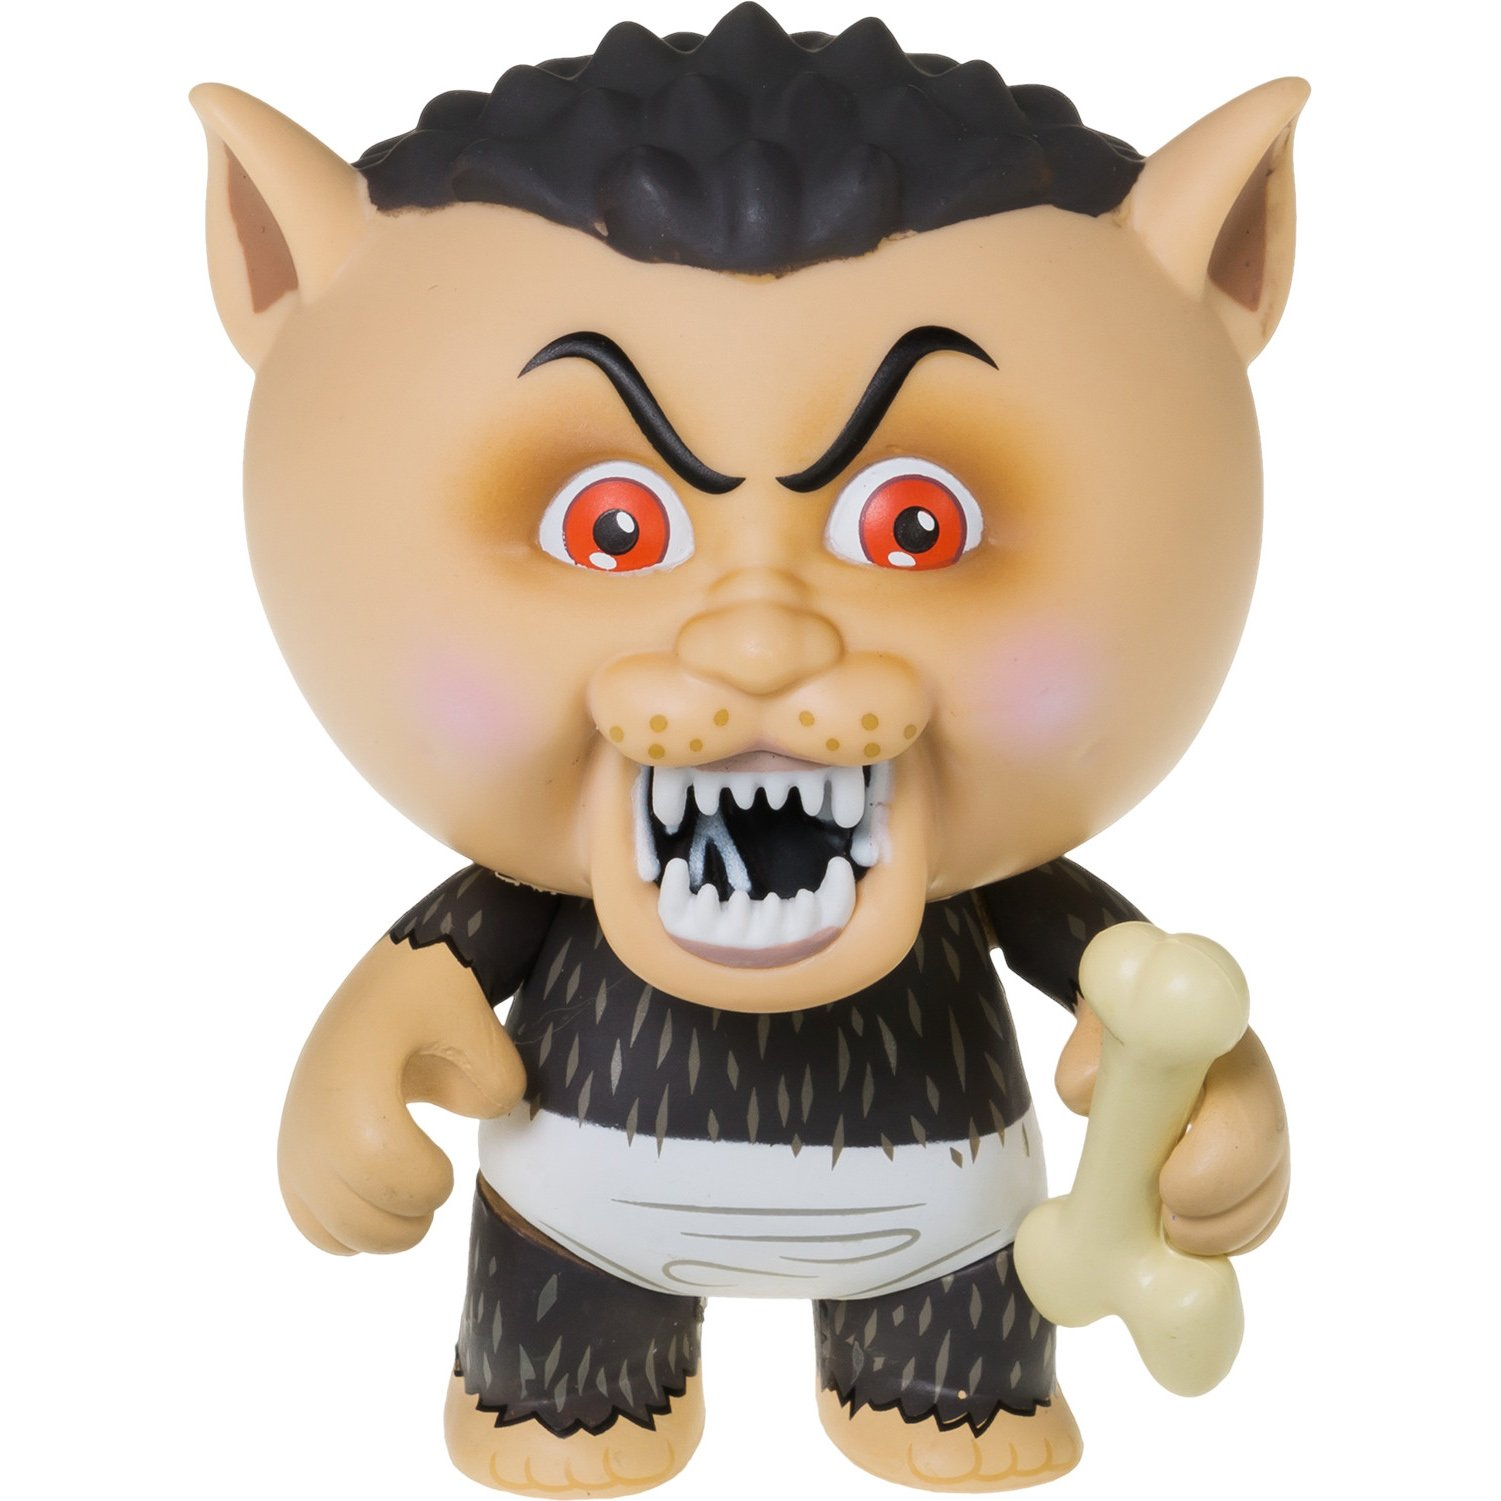 Eerie Eric: ~3'' Garbage Pail Kids x Funko Mystery Minis Mini-Figure Series #2 + 1 FREE GPK Trading Card/Sticker Bundle (108454) by Garbage Pail Kids (Image #5)